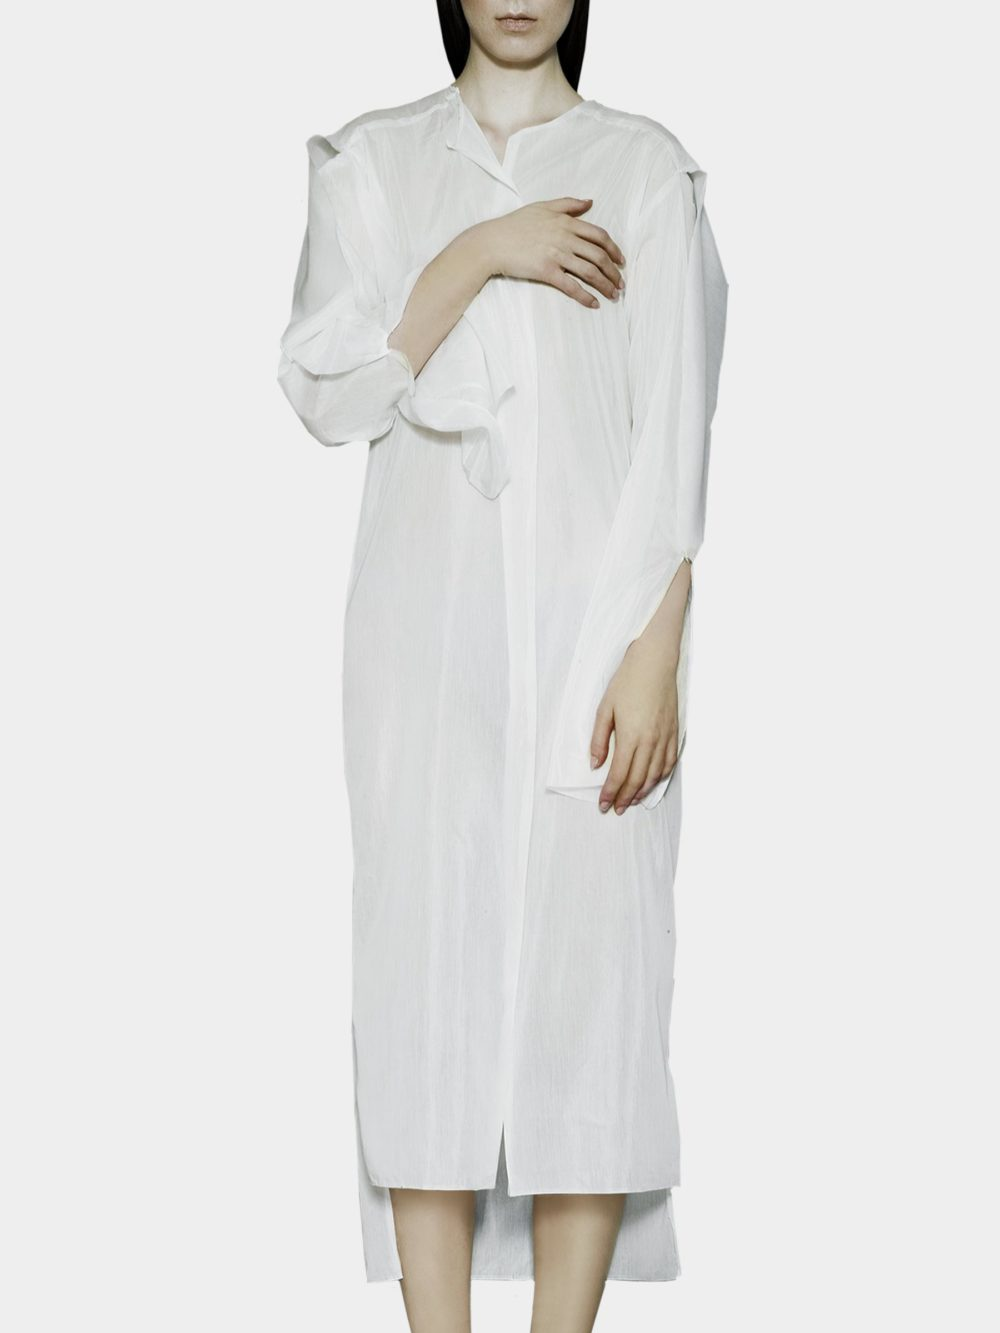 Organisciak's modern refinement of classic silhouettes is apparent in every detail of this breezy transparent tunic, that can be easily worn back to front or belted on one of the sides.